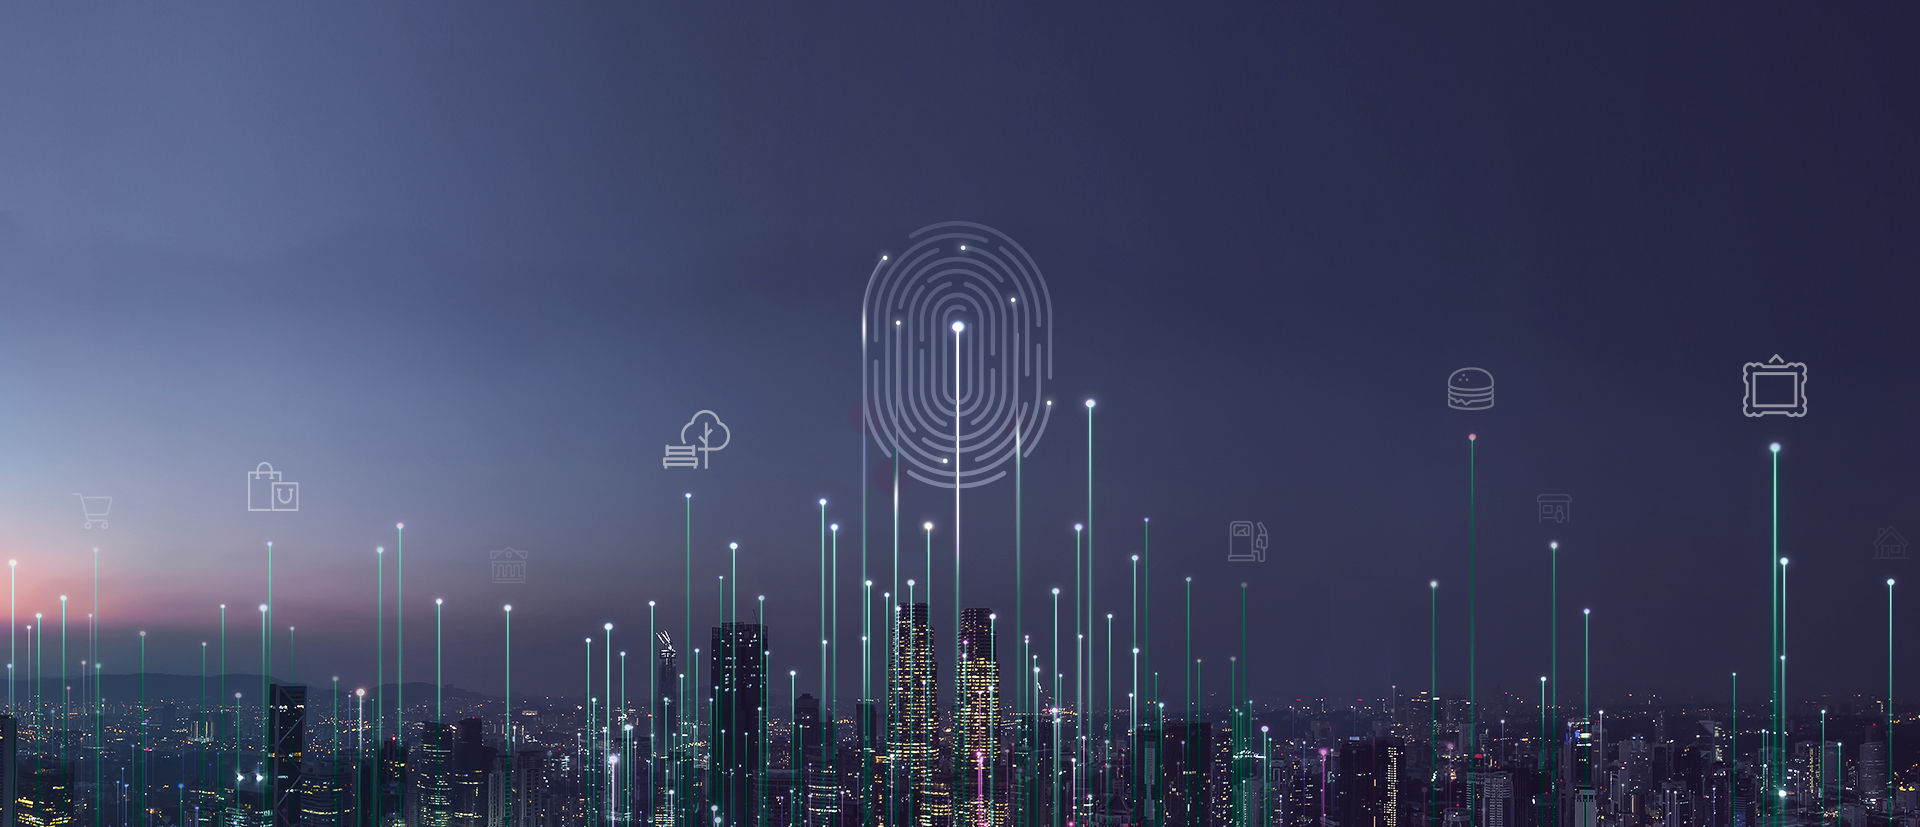 [POST] What is location behavioral biometrics